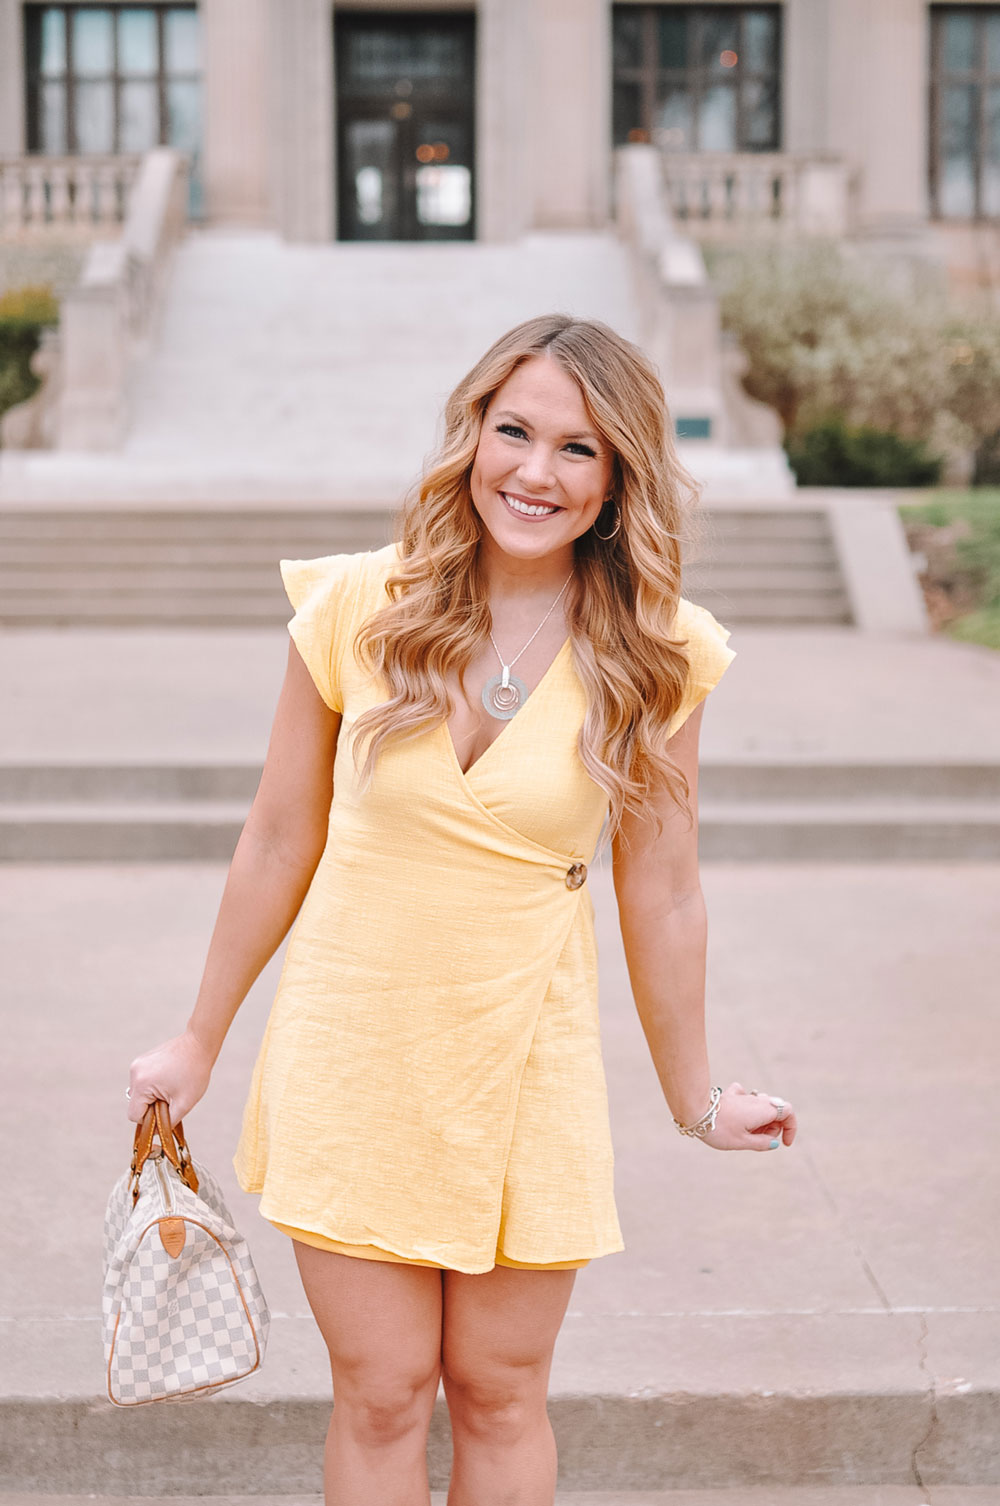 Amanda Martin of Amanda's OK styles Roma Designer Jewelry for an Easter Dress look